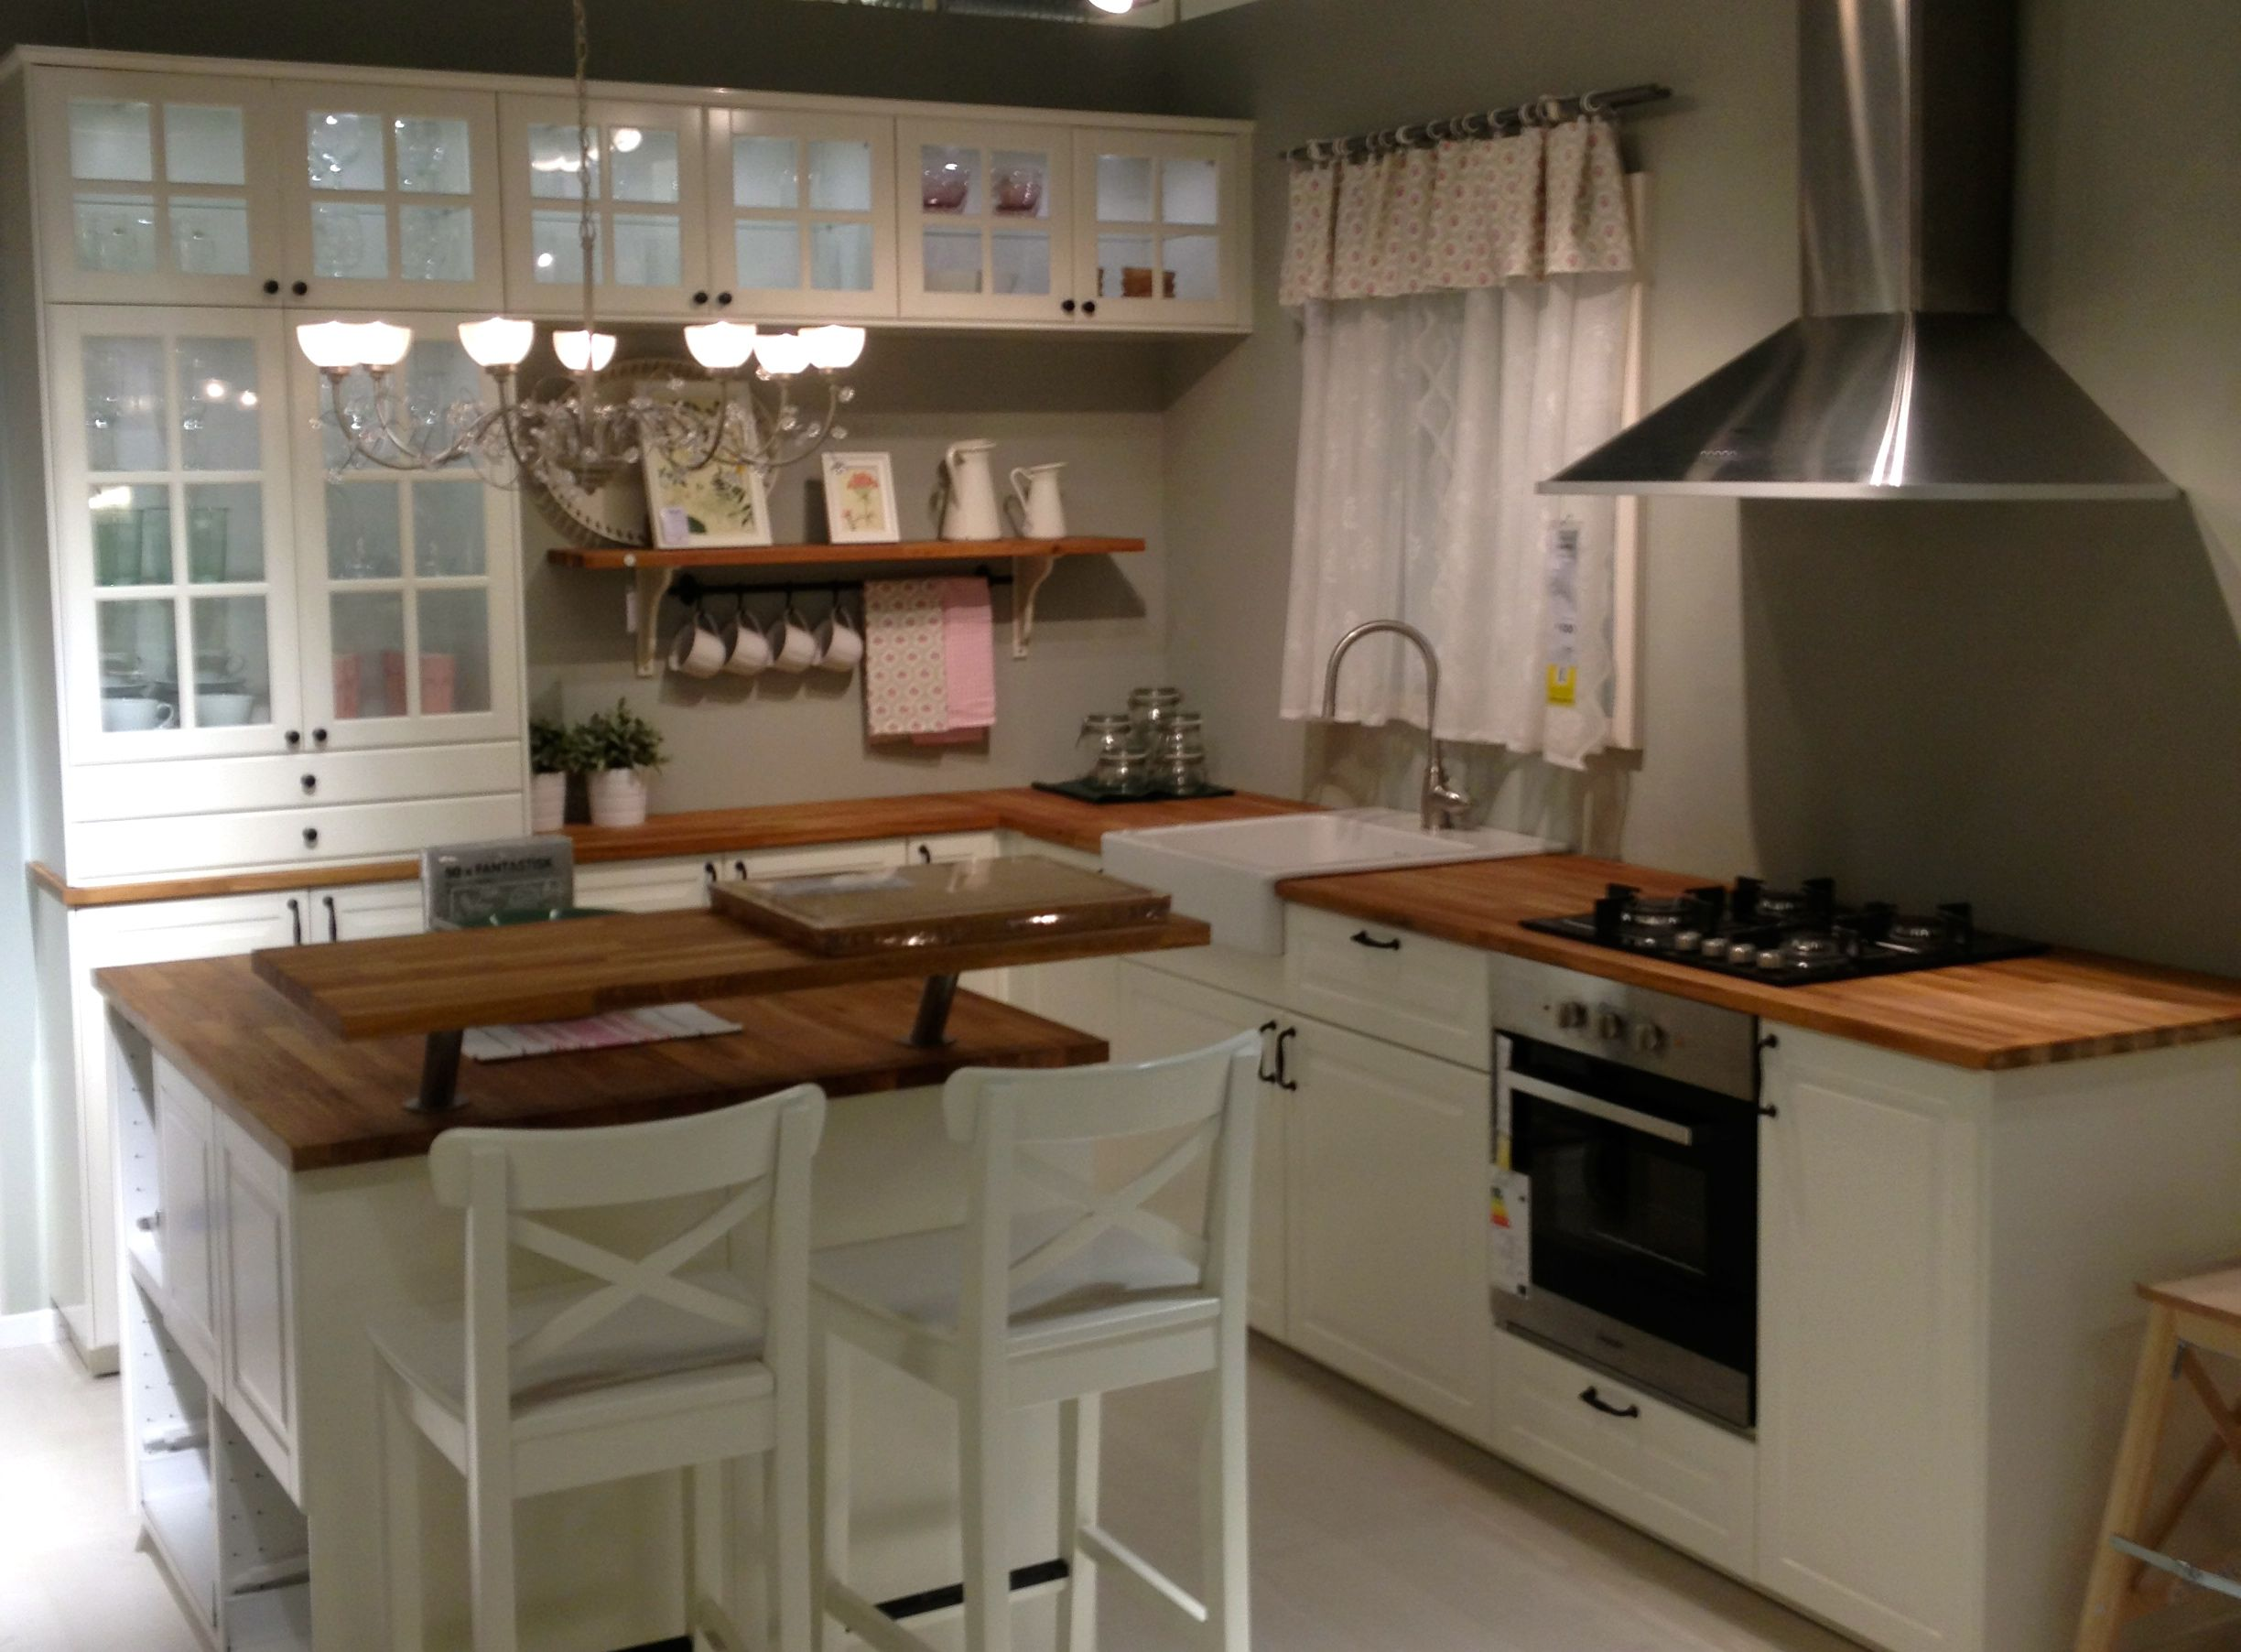 Ikea kitchens hittarp landhausstil kueche - Ikea Bodbyn Kitchen Google Search